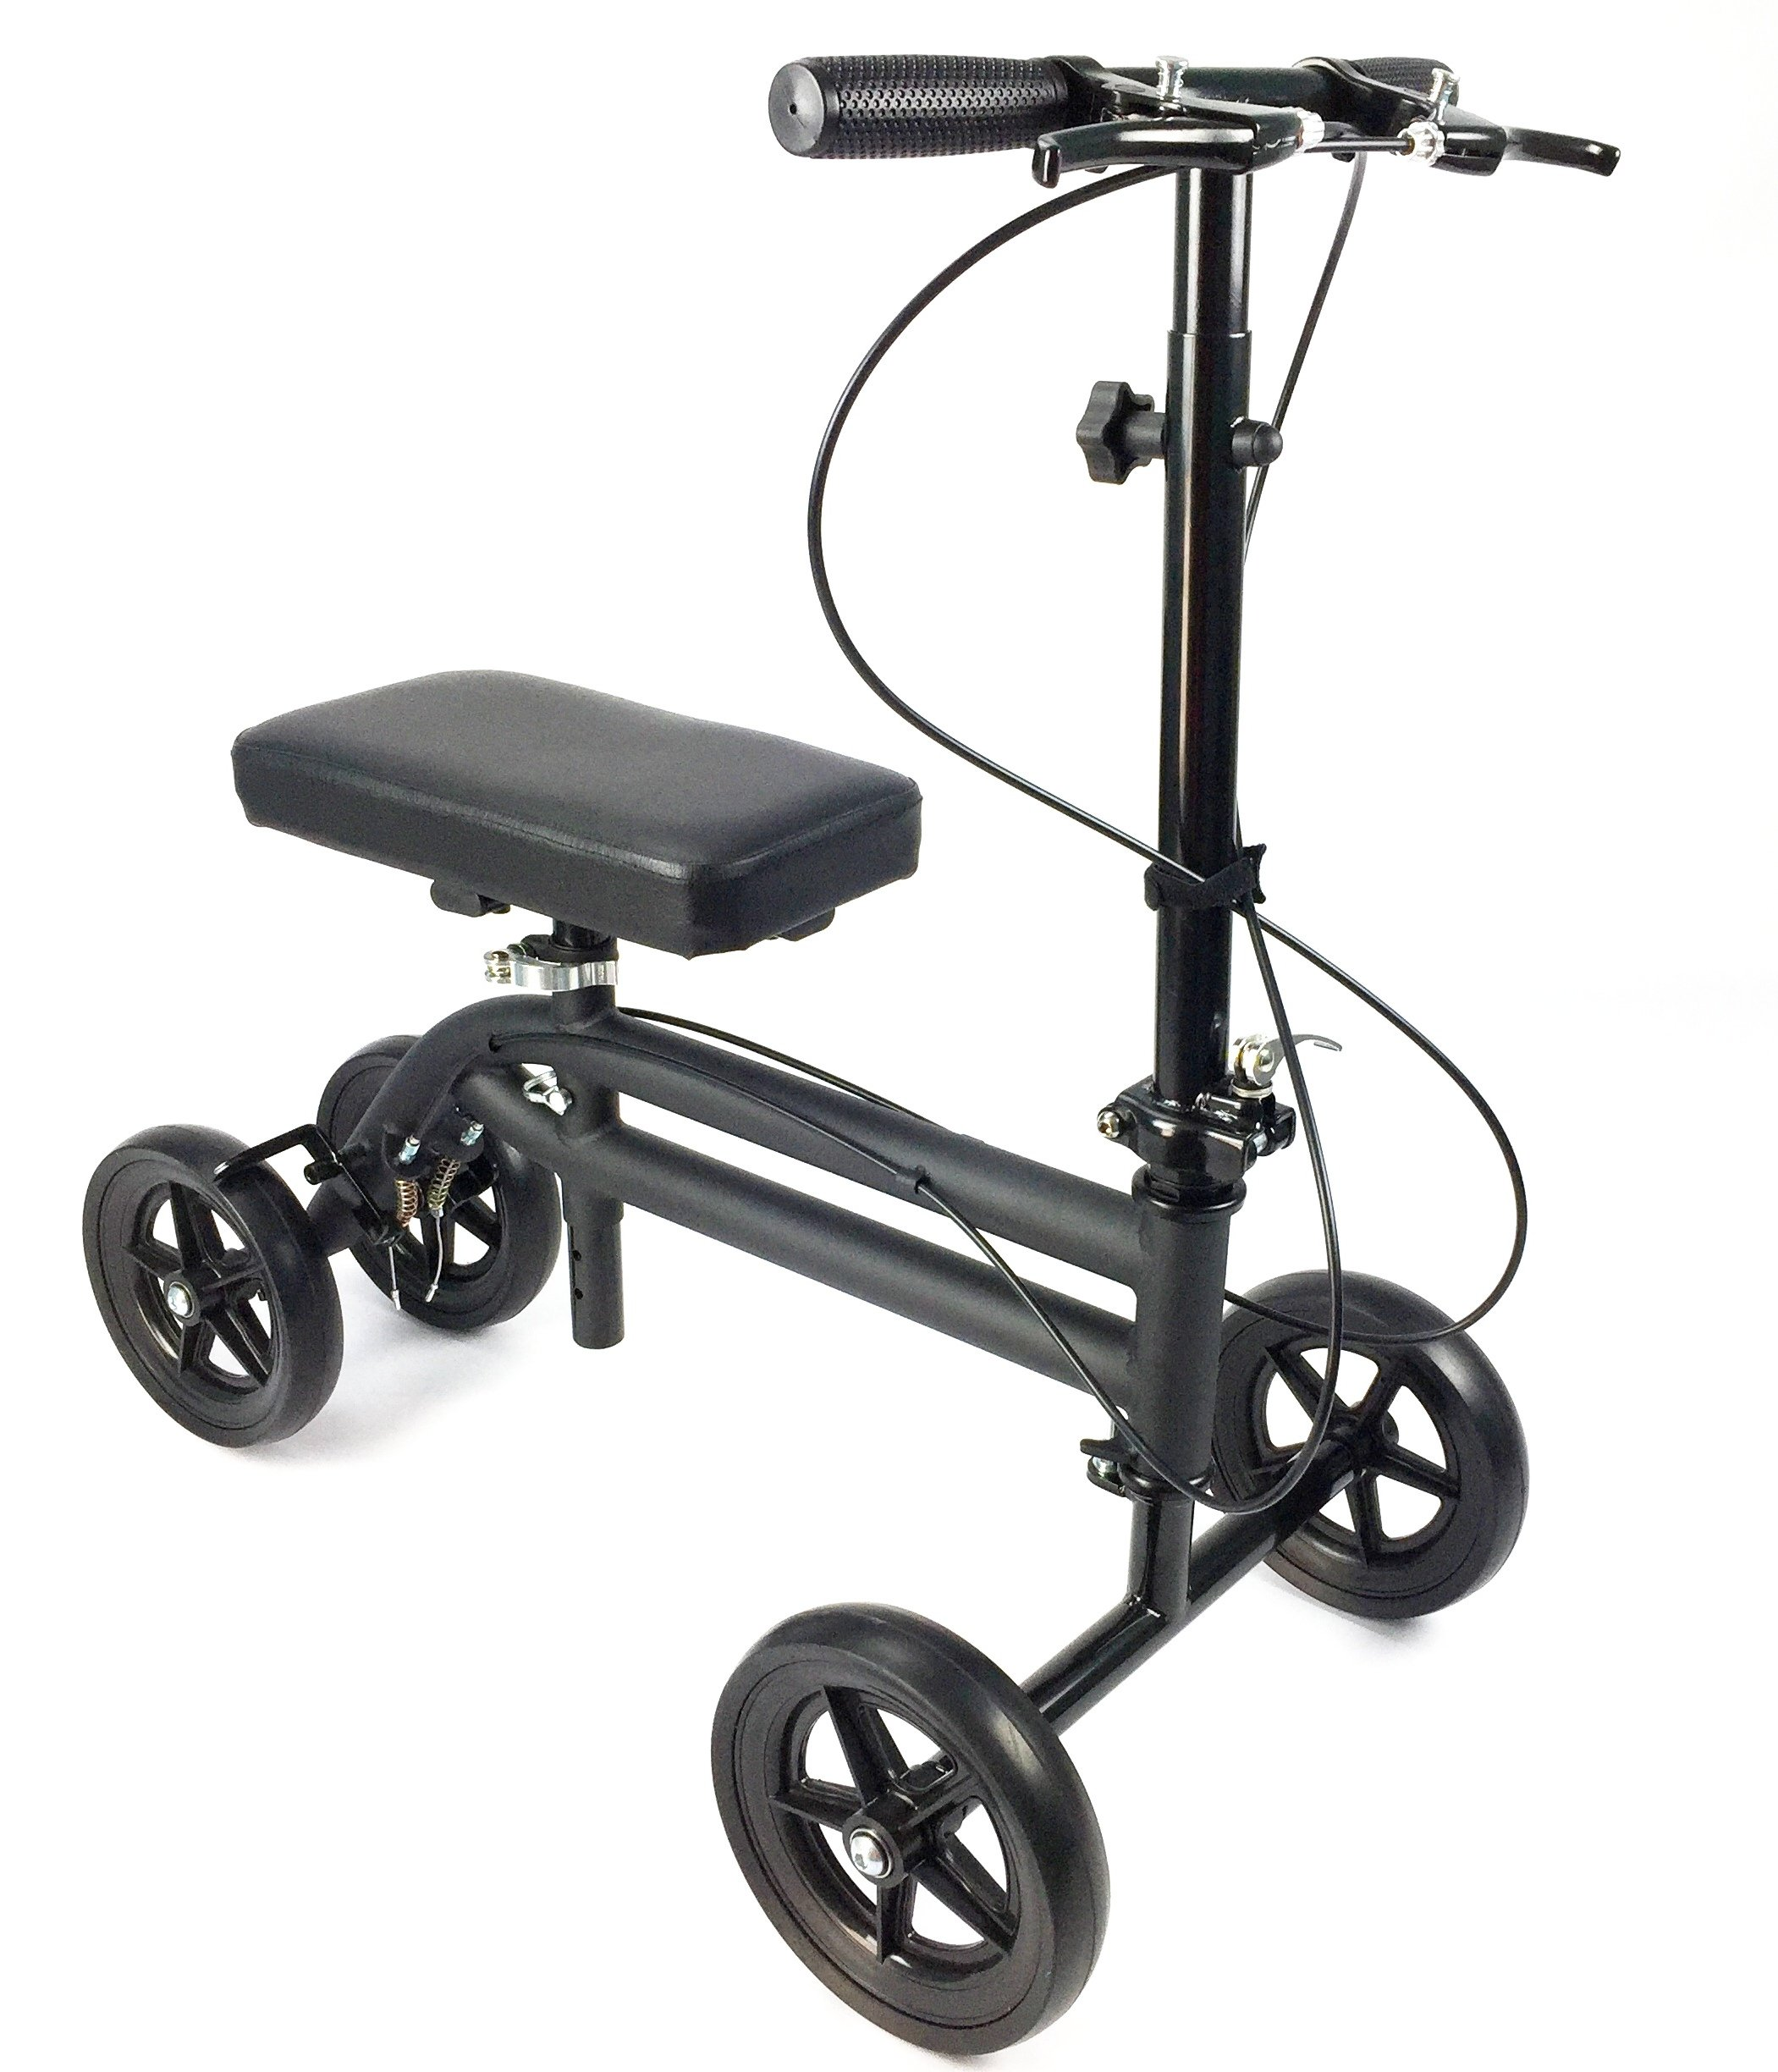 KneeRover Economy Knee Scooter Steerable Knee Walker Crutch Alternative with DUAL BRAKING SYSTEM in Matte Black by KneeRover